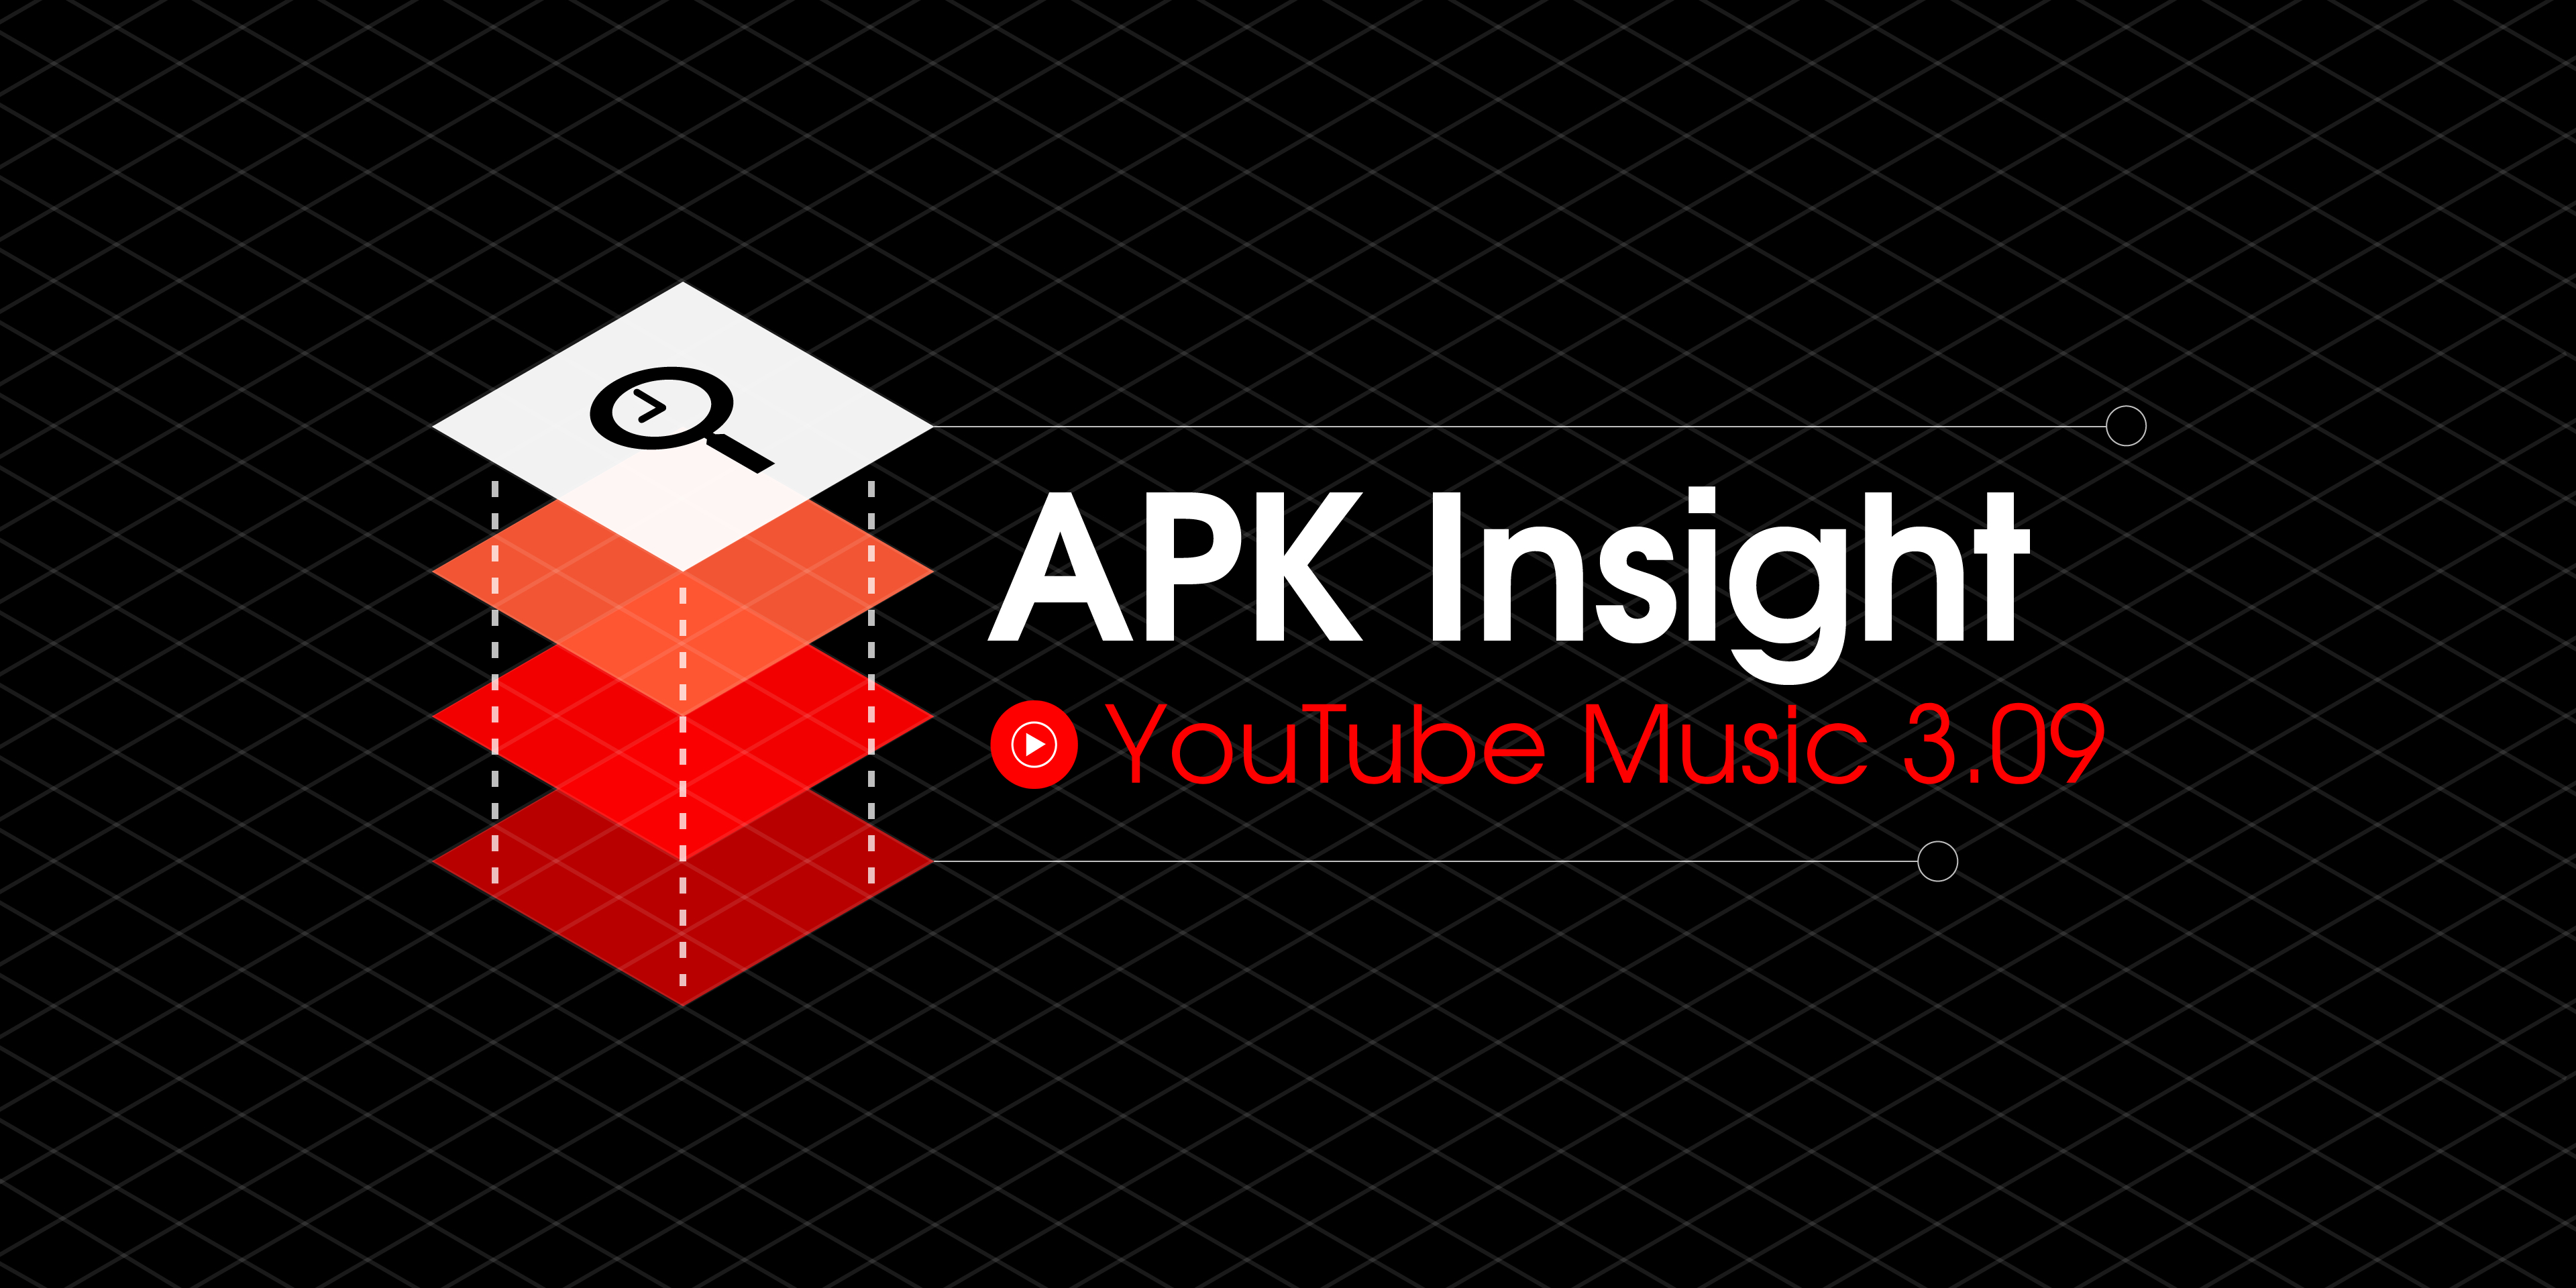 YouTube Music 3.09 reveals limitations of on-device audio files [APK Insight]